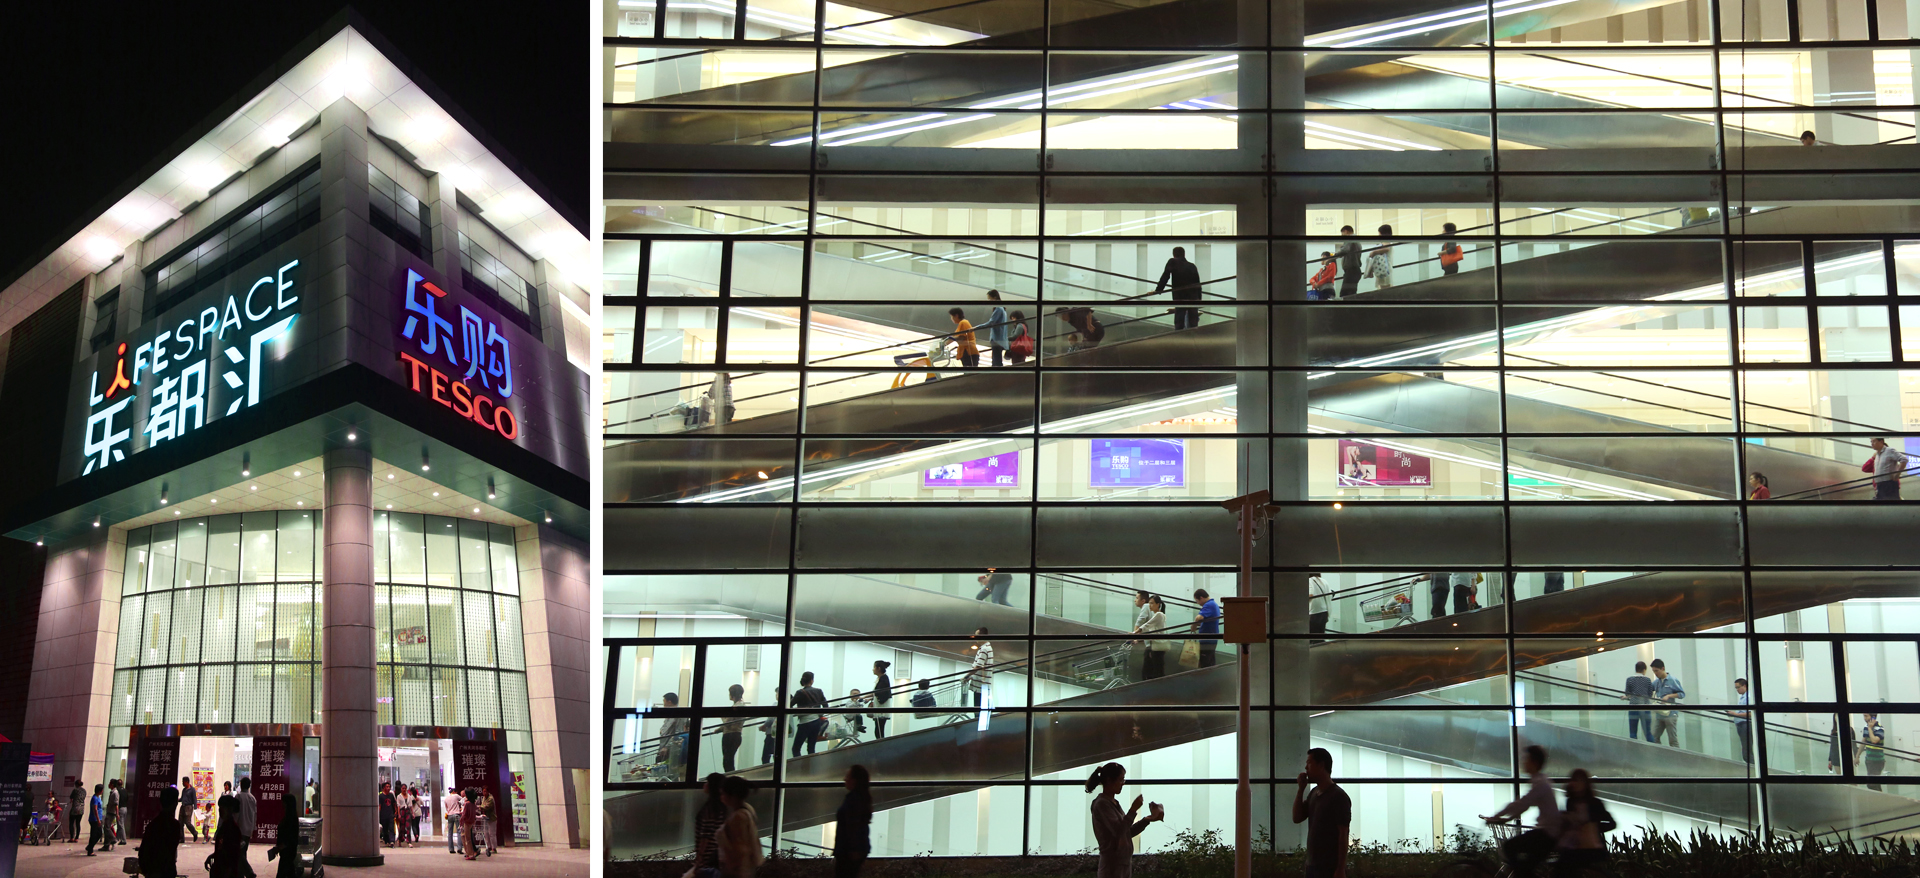 Guangzhou Lifespace Mall, Guangzhou, China